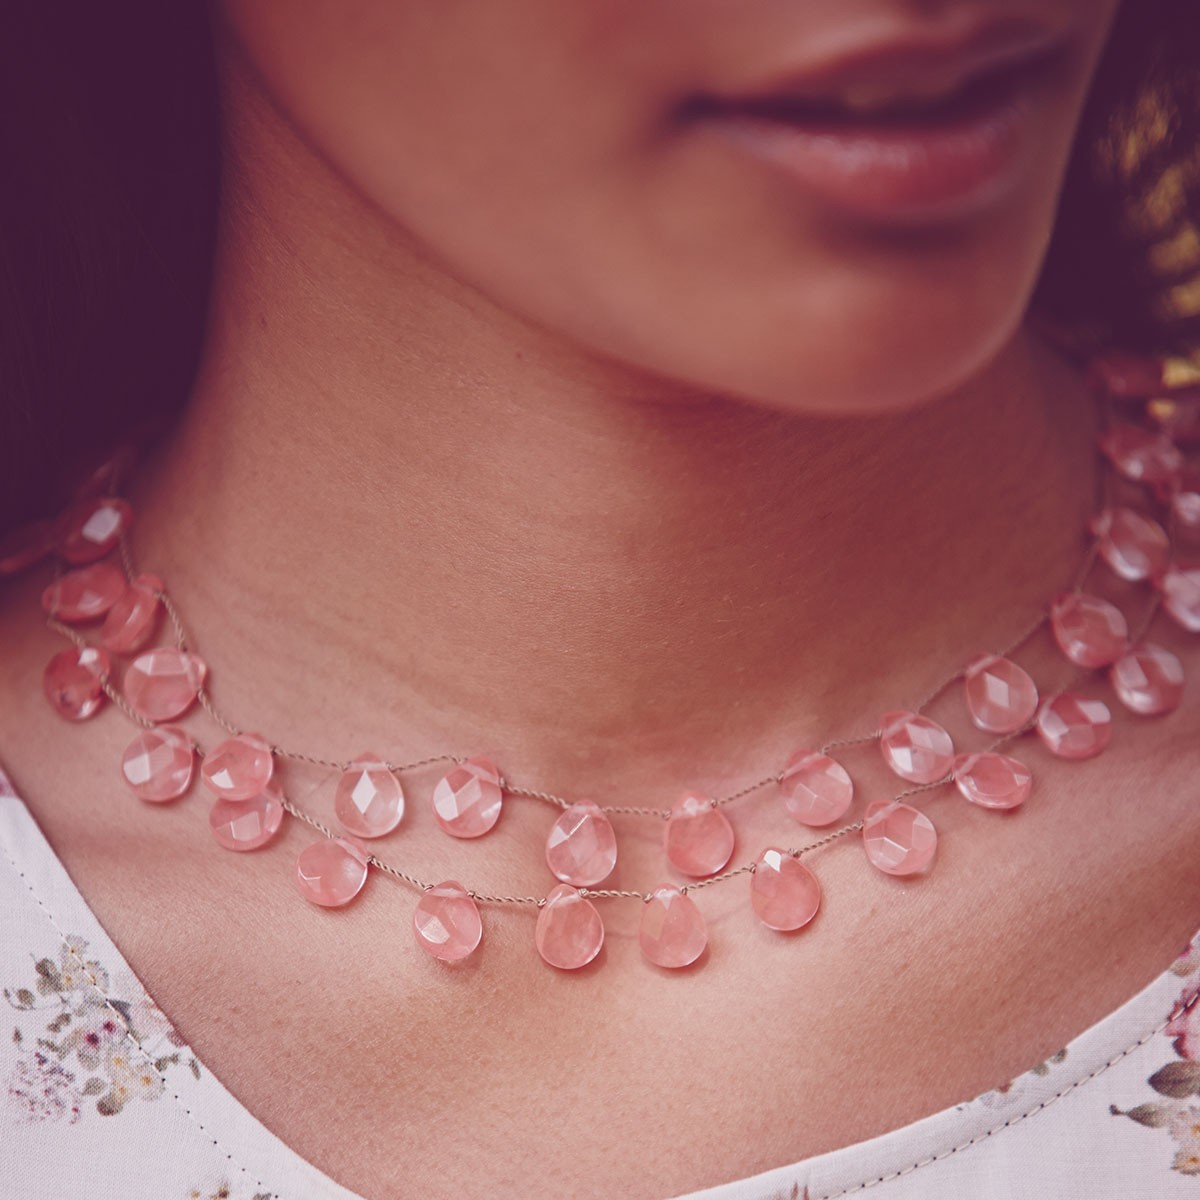 Faceted Strawberry Quartz Teardrop Necklace, $295